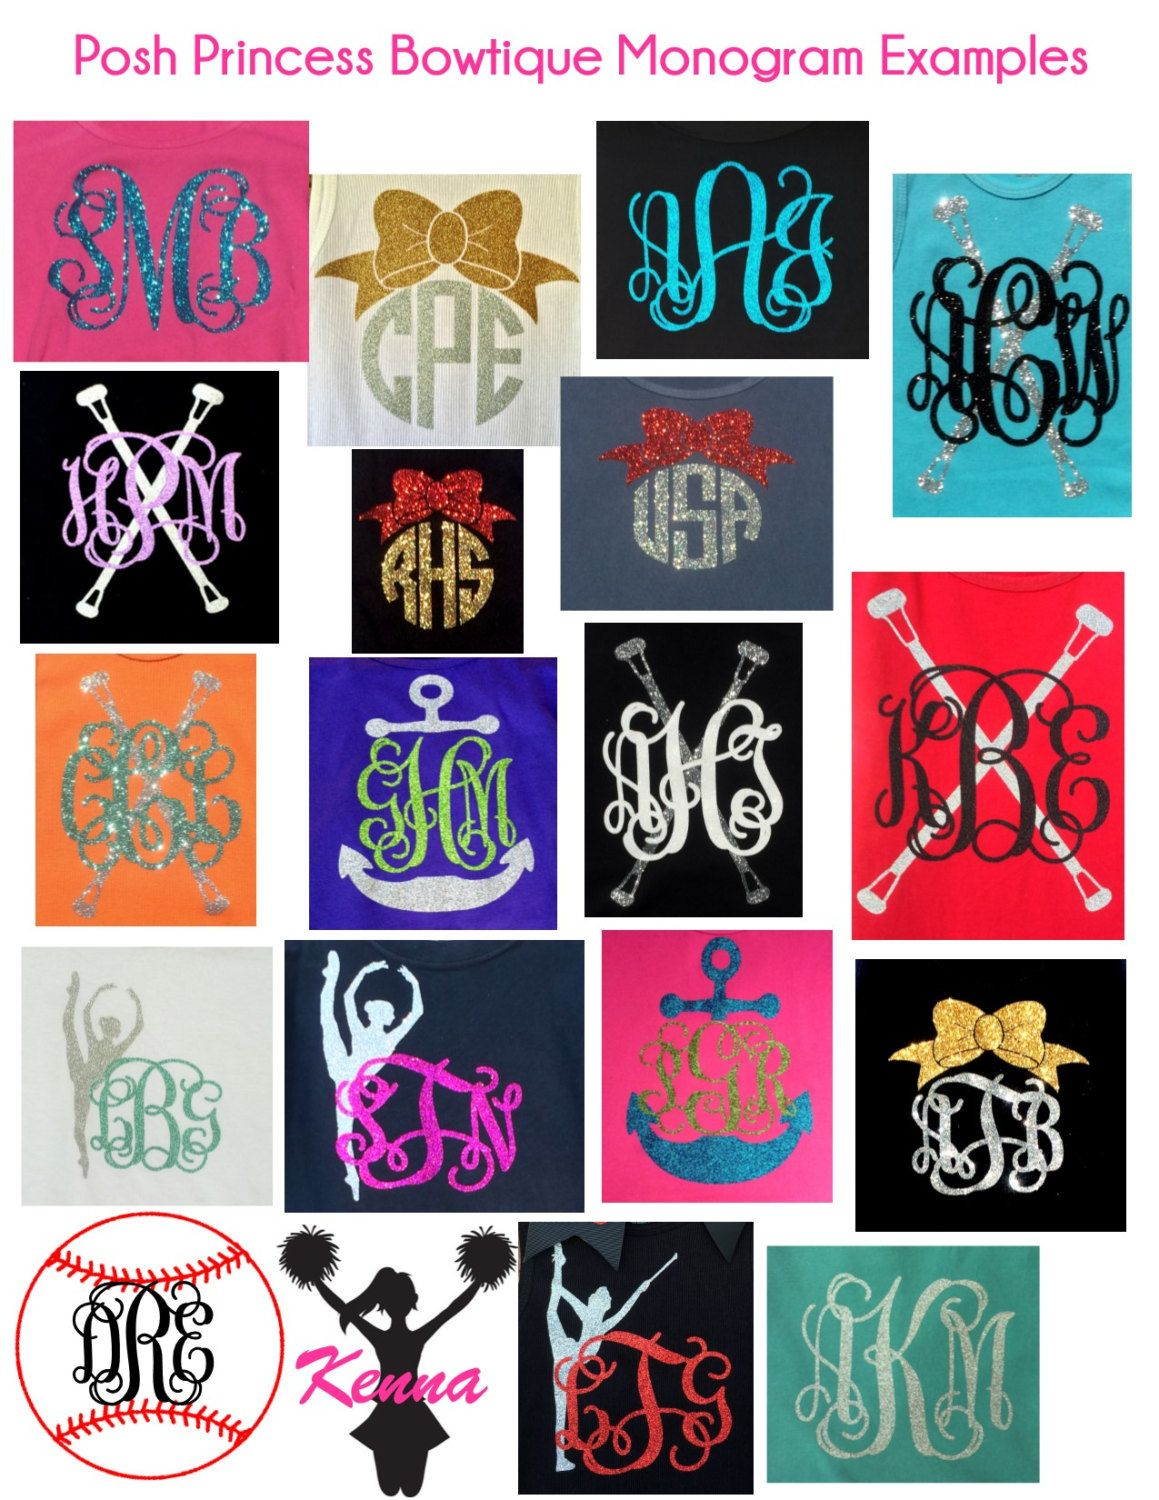 Confetti Glittervinyl Monogrammed Tee Wordy Birdy Designs - Glitter custom vinyl decals for shirts